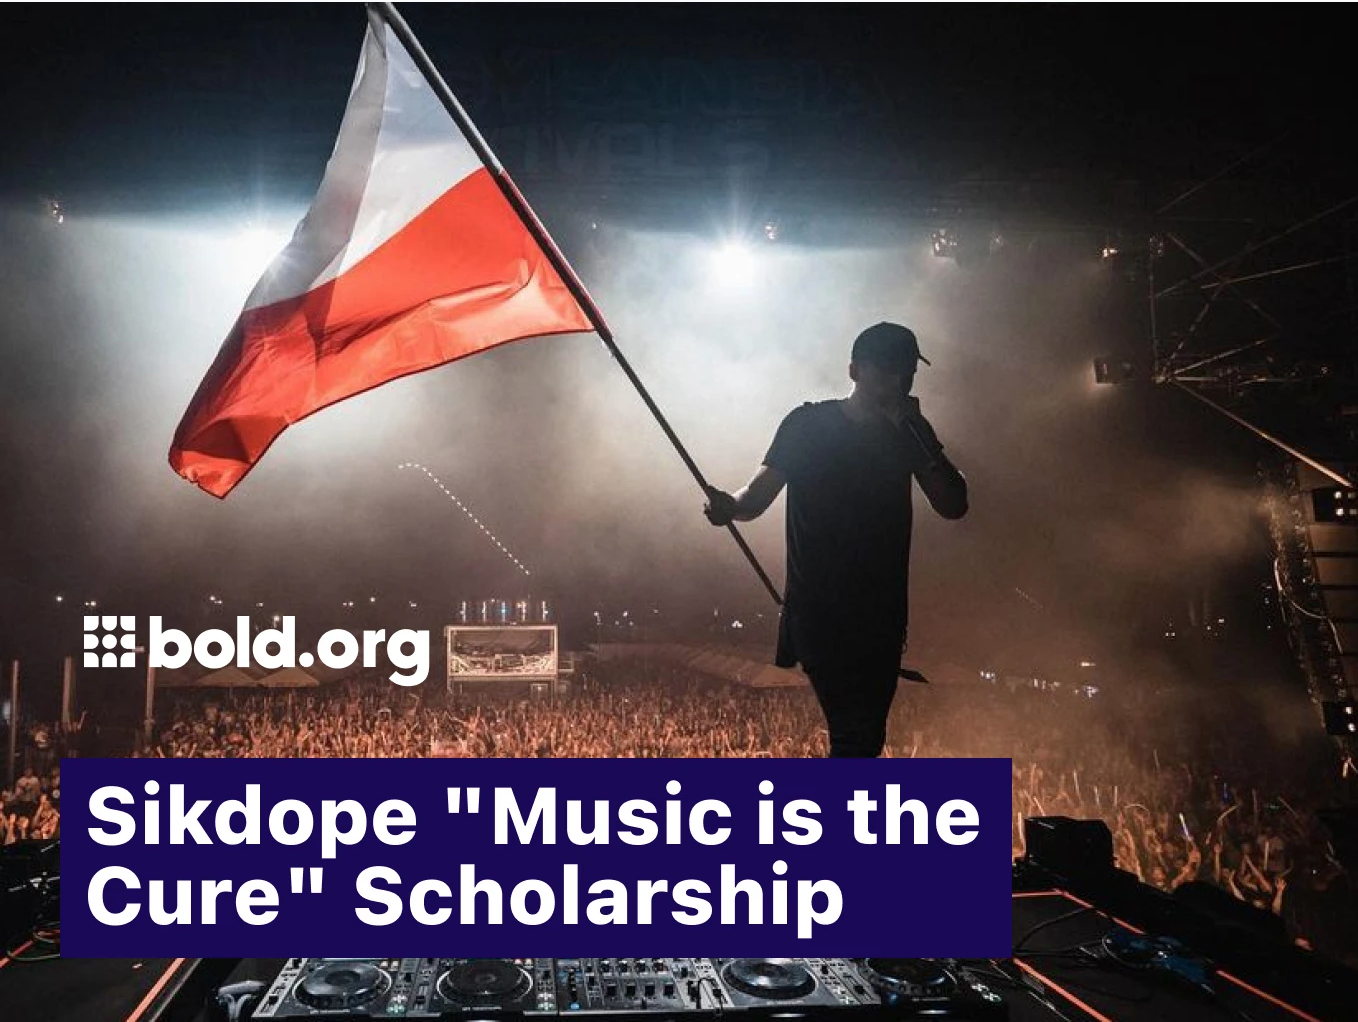 Picture for Sikdope Scholarship contest. Sikdope performing on stage.